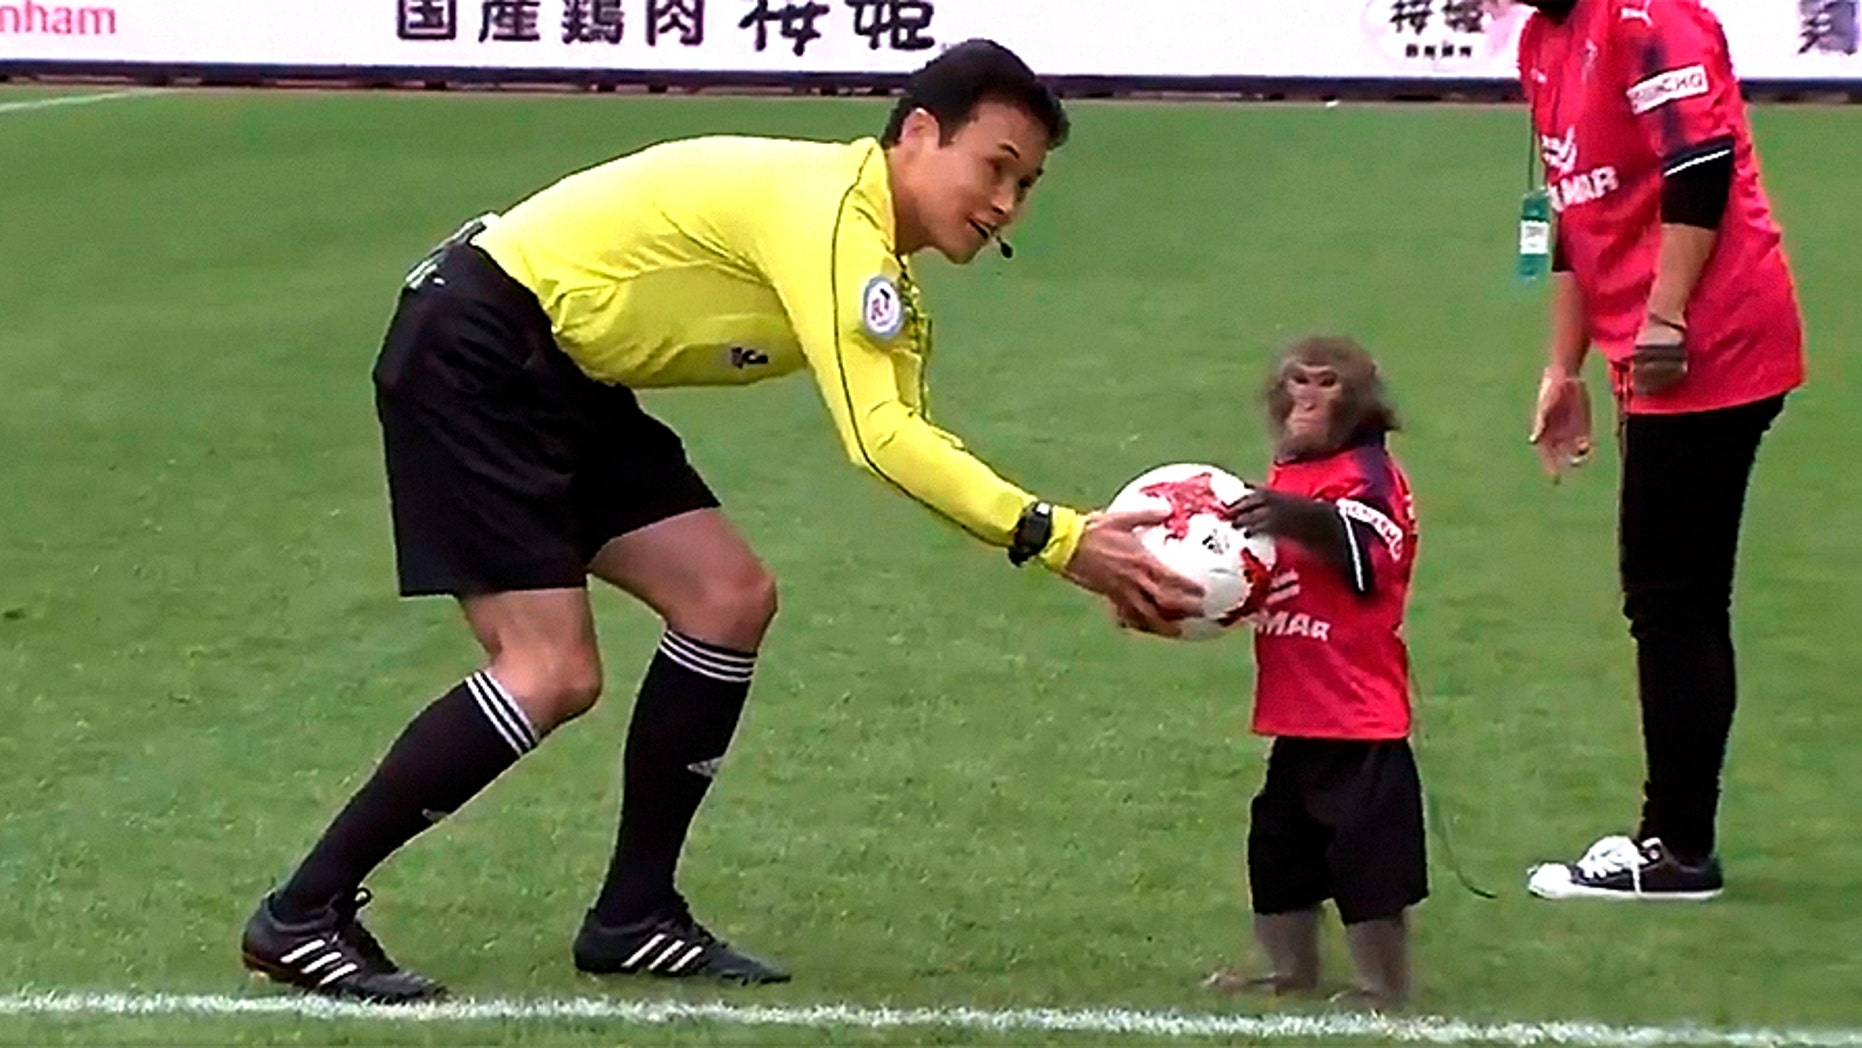 A macaque was used by a J League soccer club in a stunt to kick off a recent match.